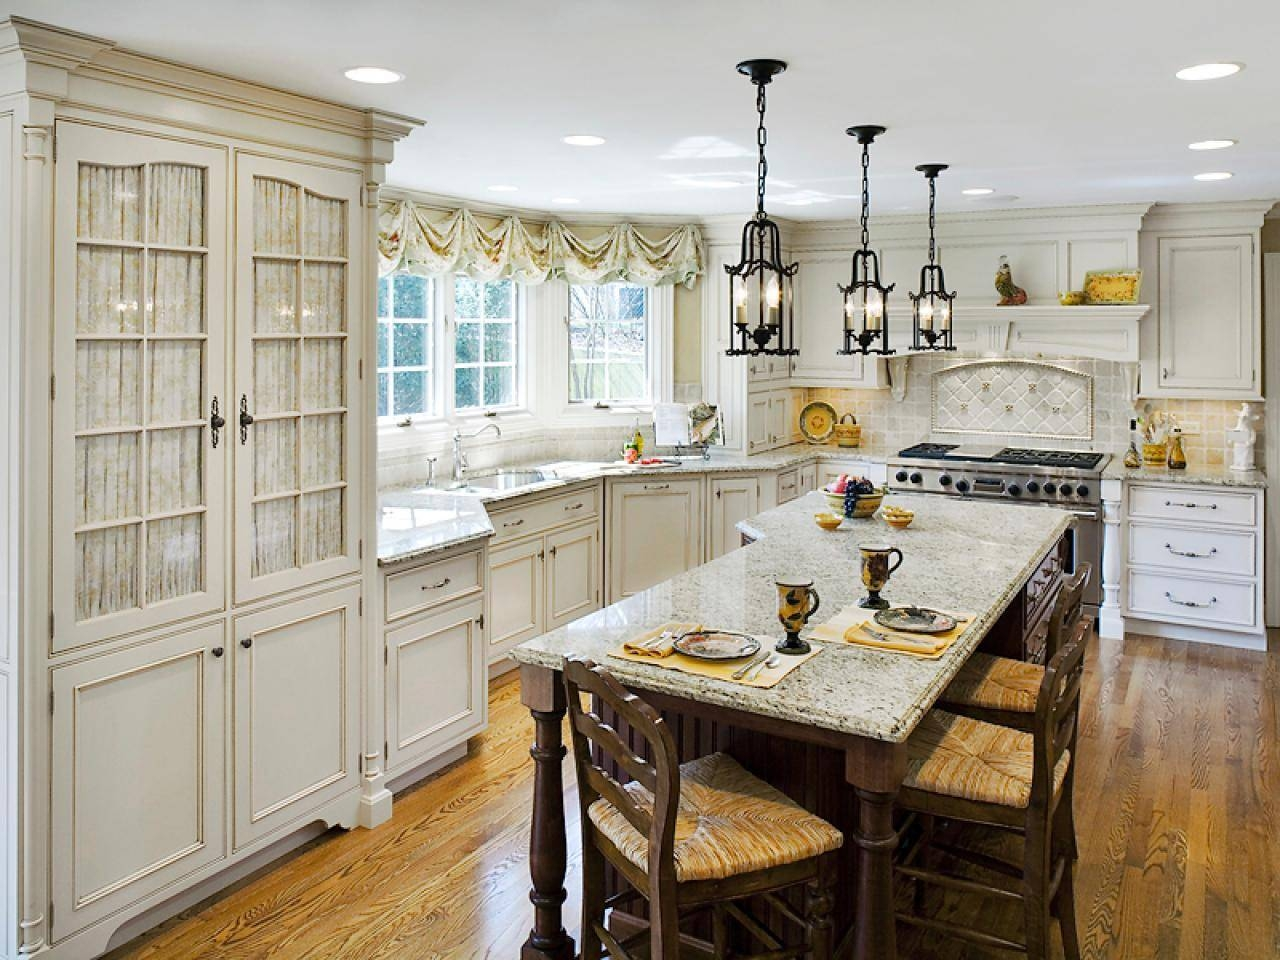 French Country Kitchen Lighting, Fairfield Semi Flush Mount with Cottage Style Pendant Lighting (Image 12 of 15)